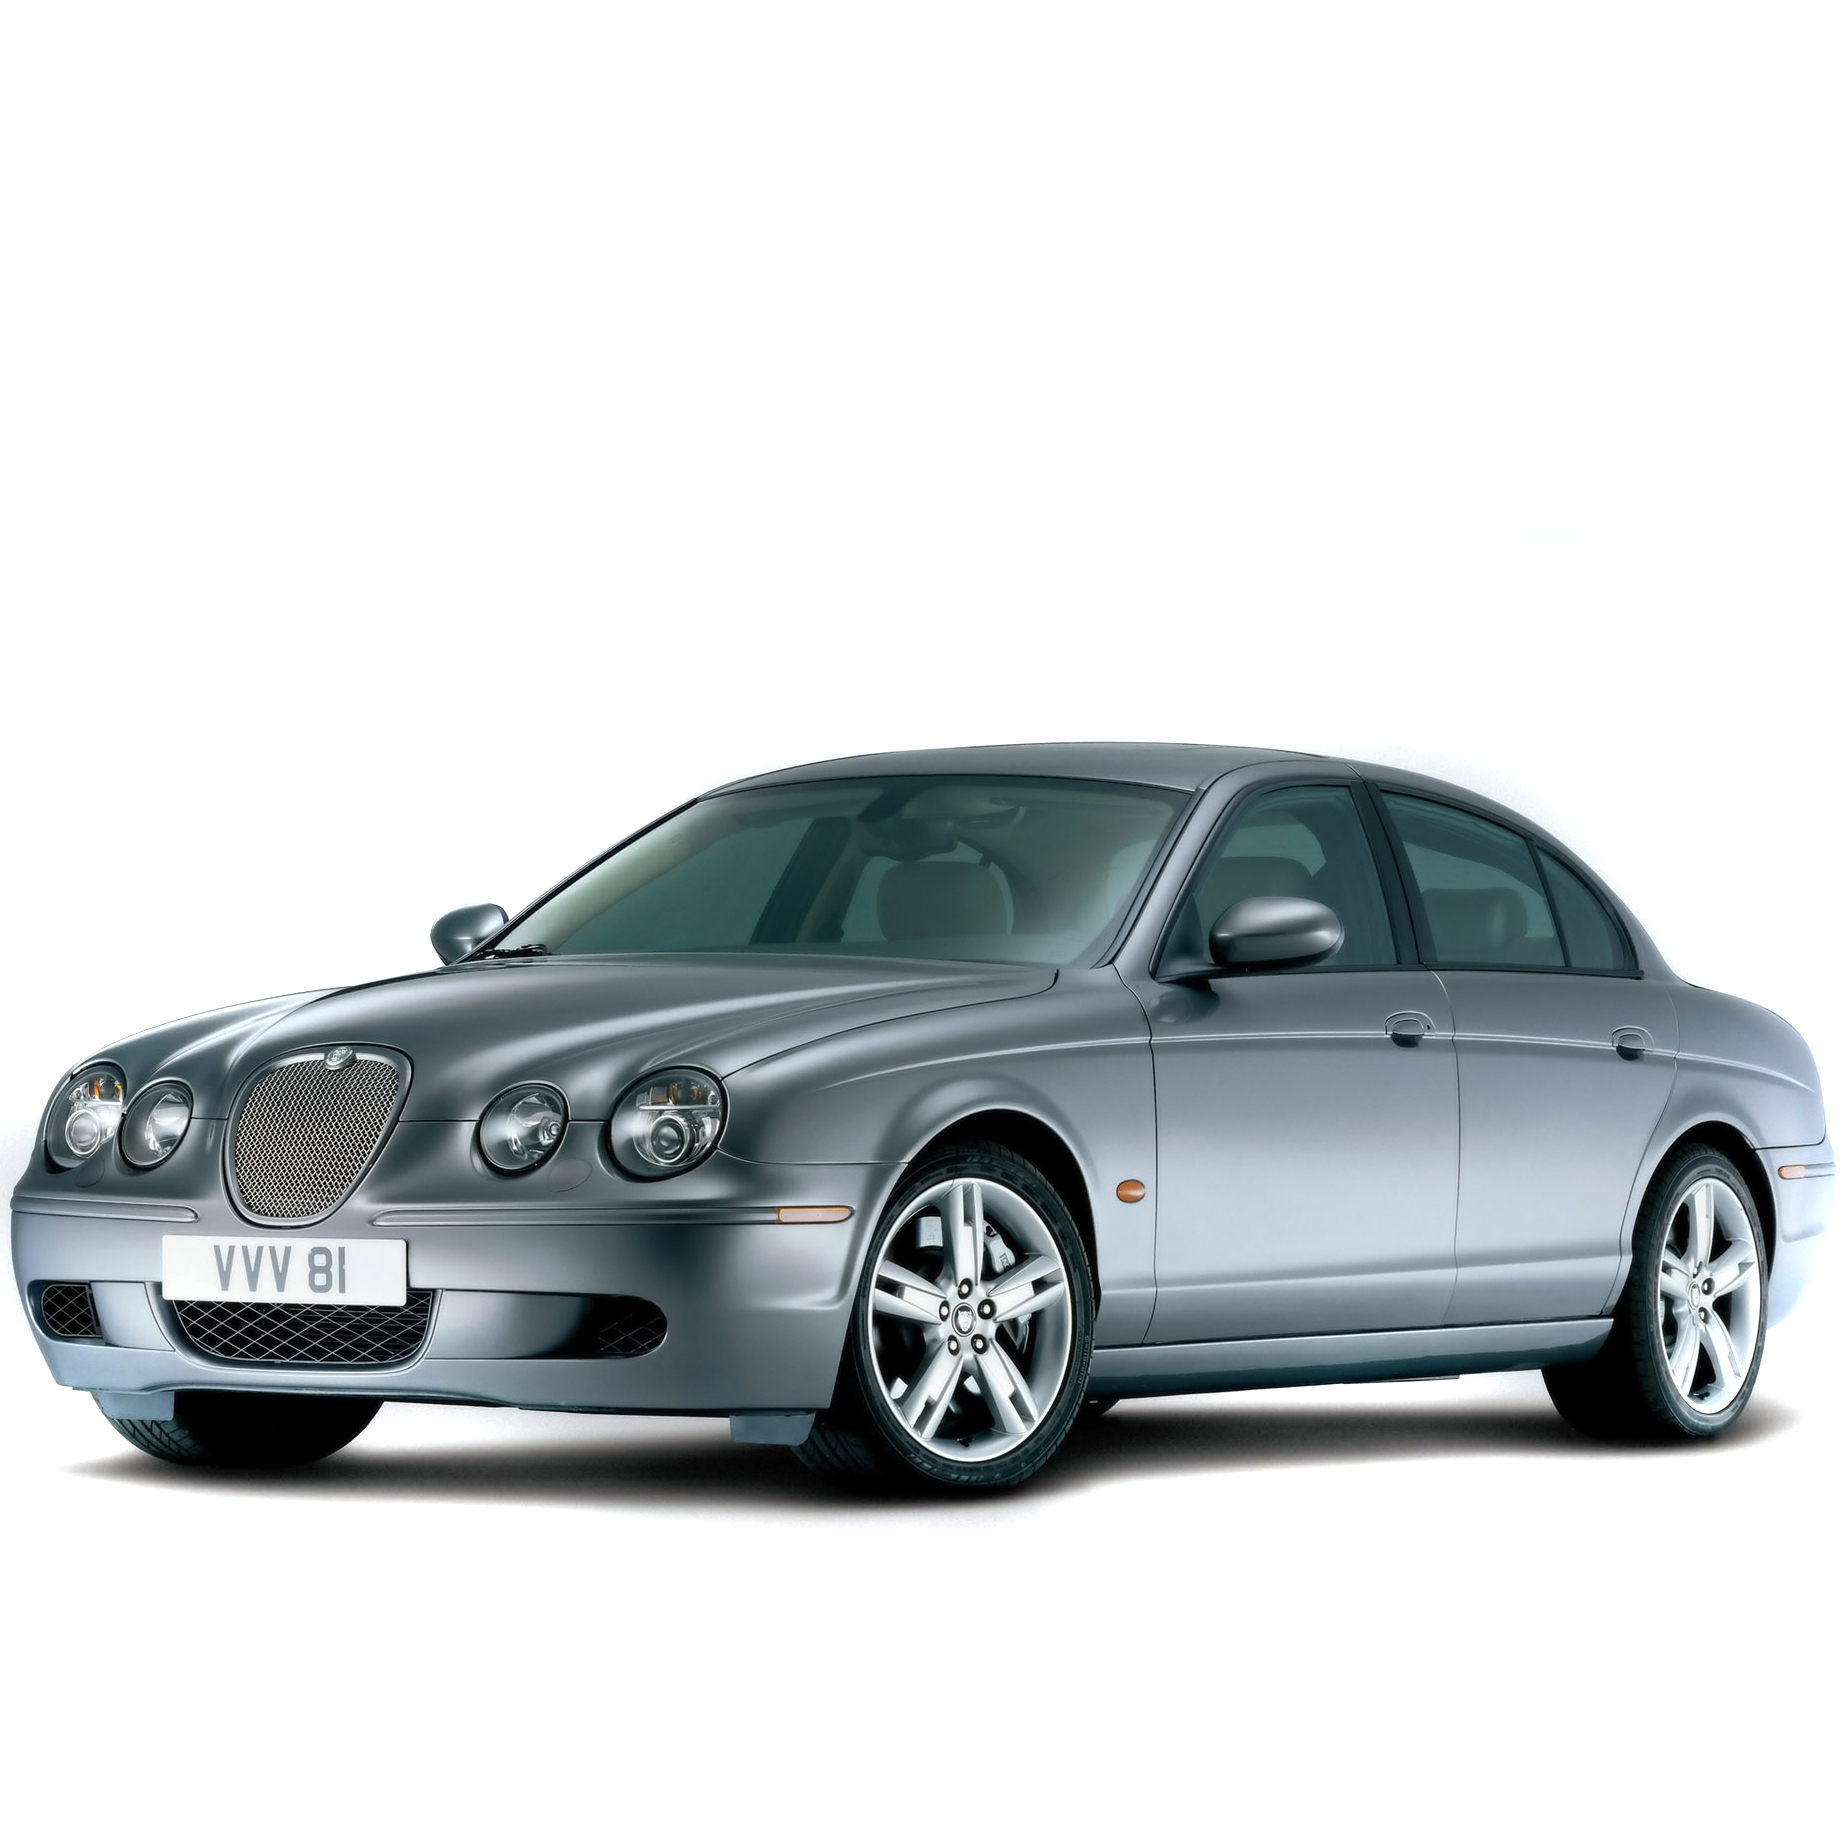 Jaguar S Type Car Mats (All Models)